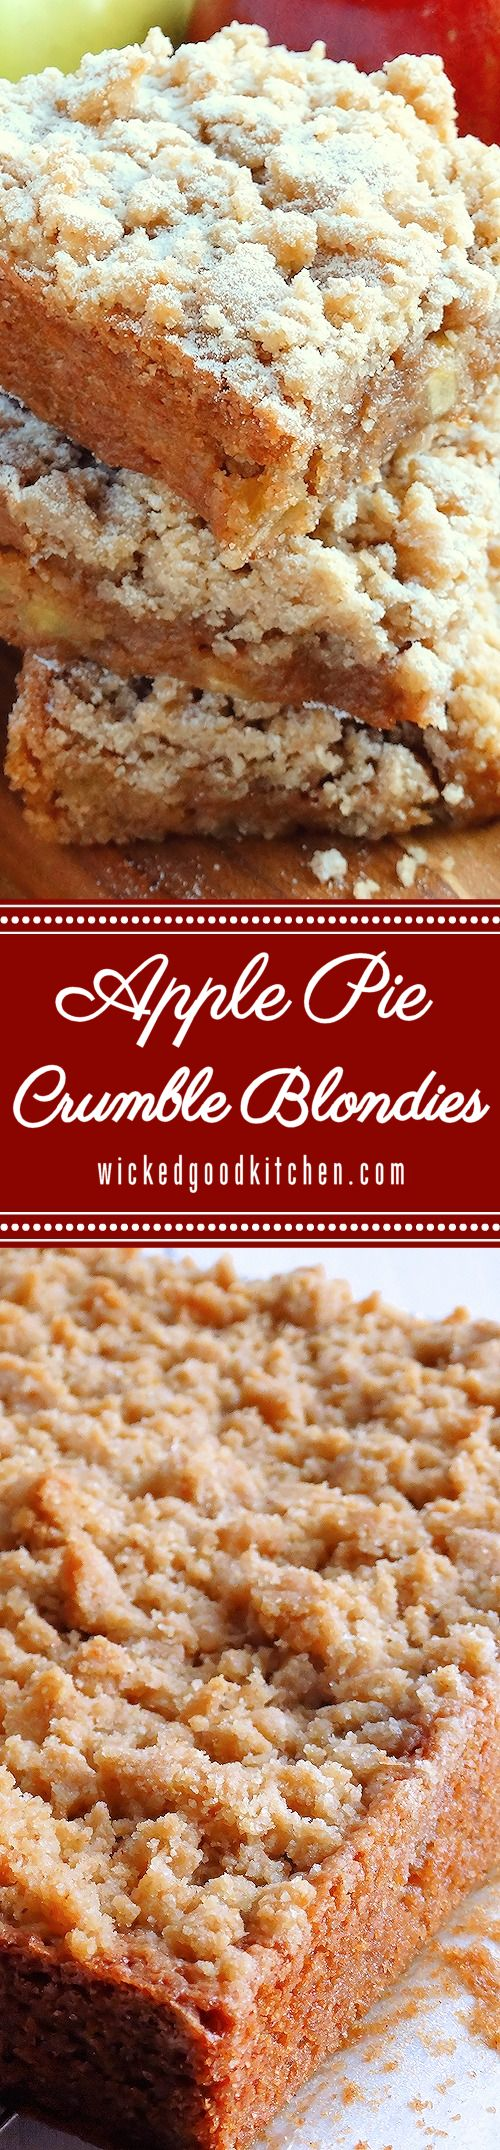 Fudgy and almost gooey Apple Pie Crumble Blondies are like a cross between Apple Crumble Pie and classic Blondies. (includes gluten free option) #Fall #Thanksgiving #Holidays